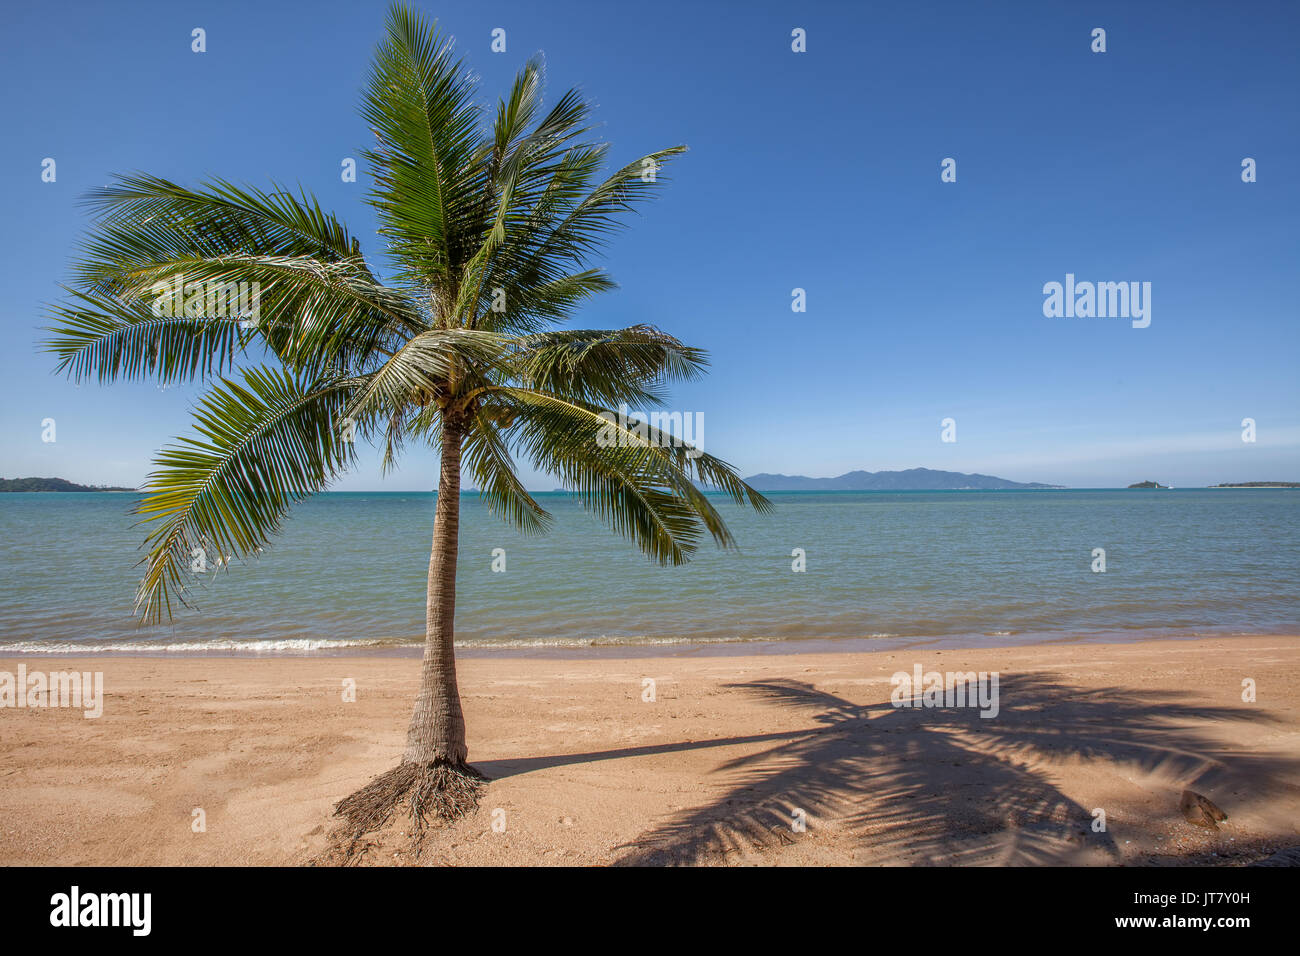 A lone palm tree at Bo Phut beach, Koh Samui island, Thailand - Stock Image